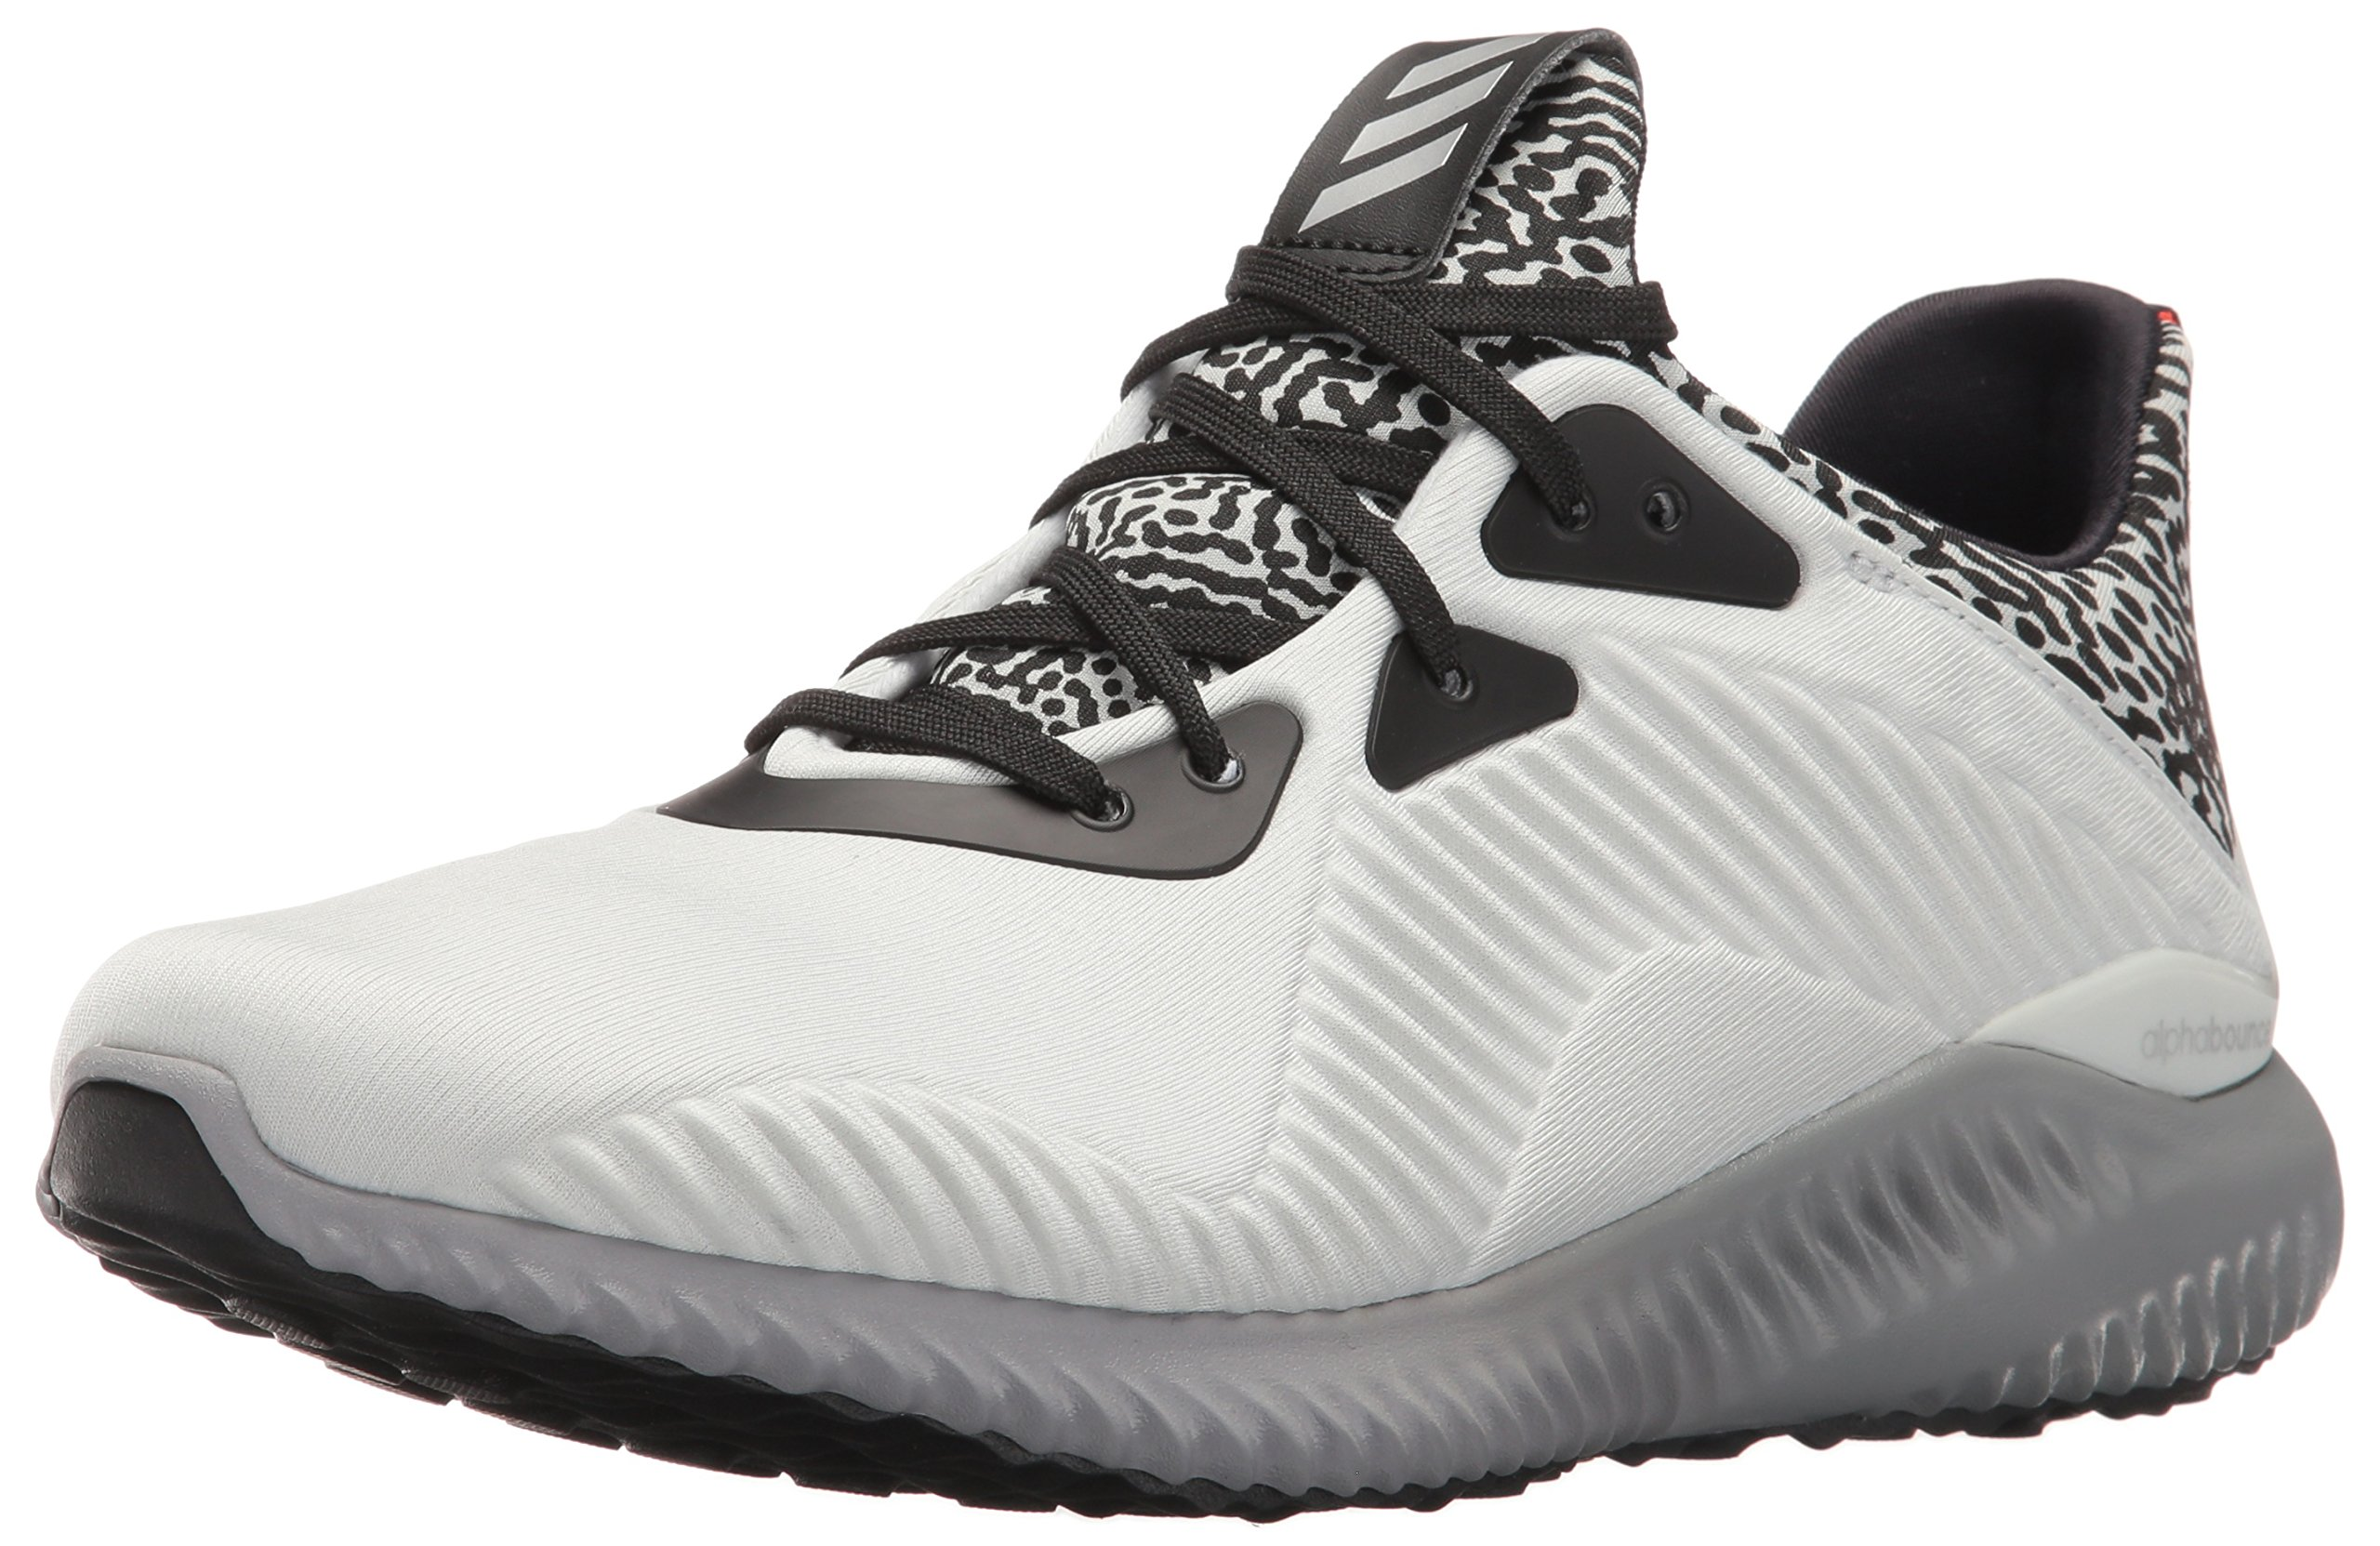 61af55769 Galleon - Adidas Performance Men s Alphabounce M Running Shoe